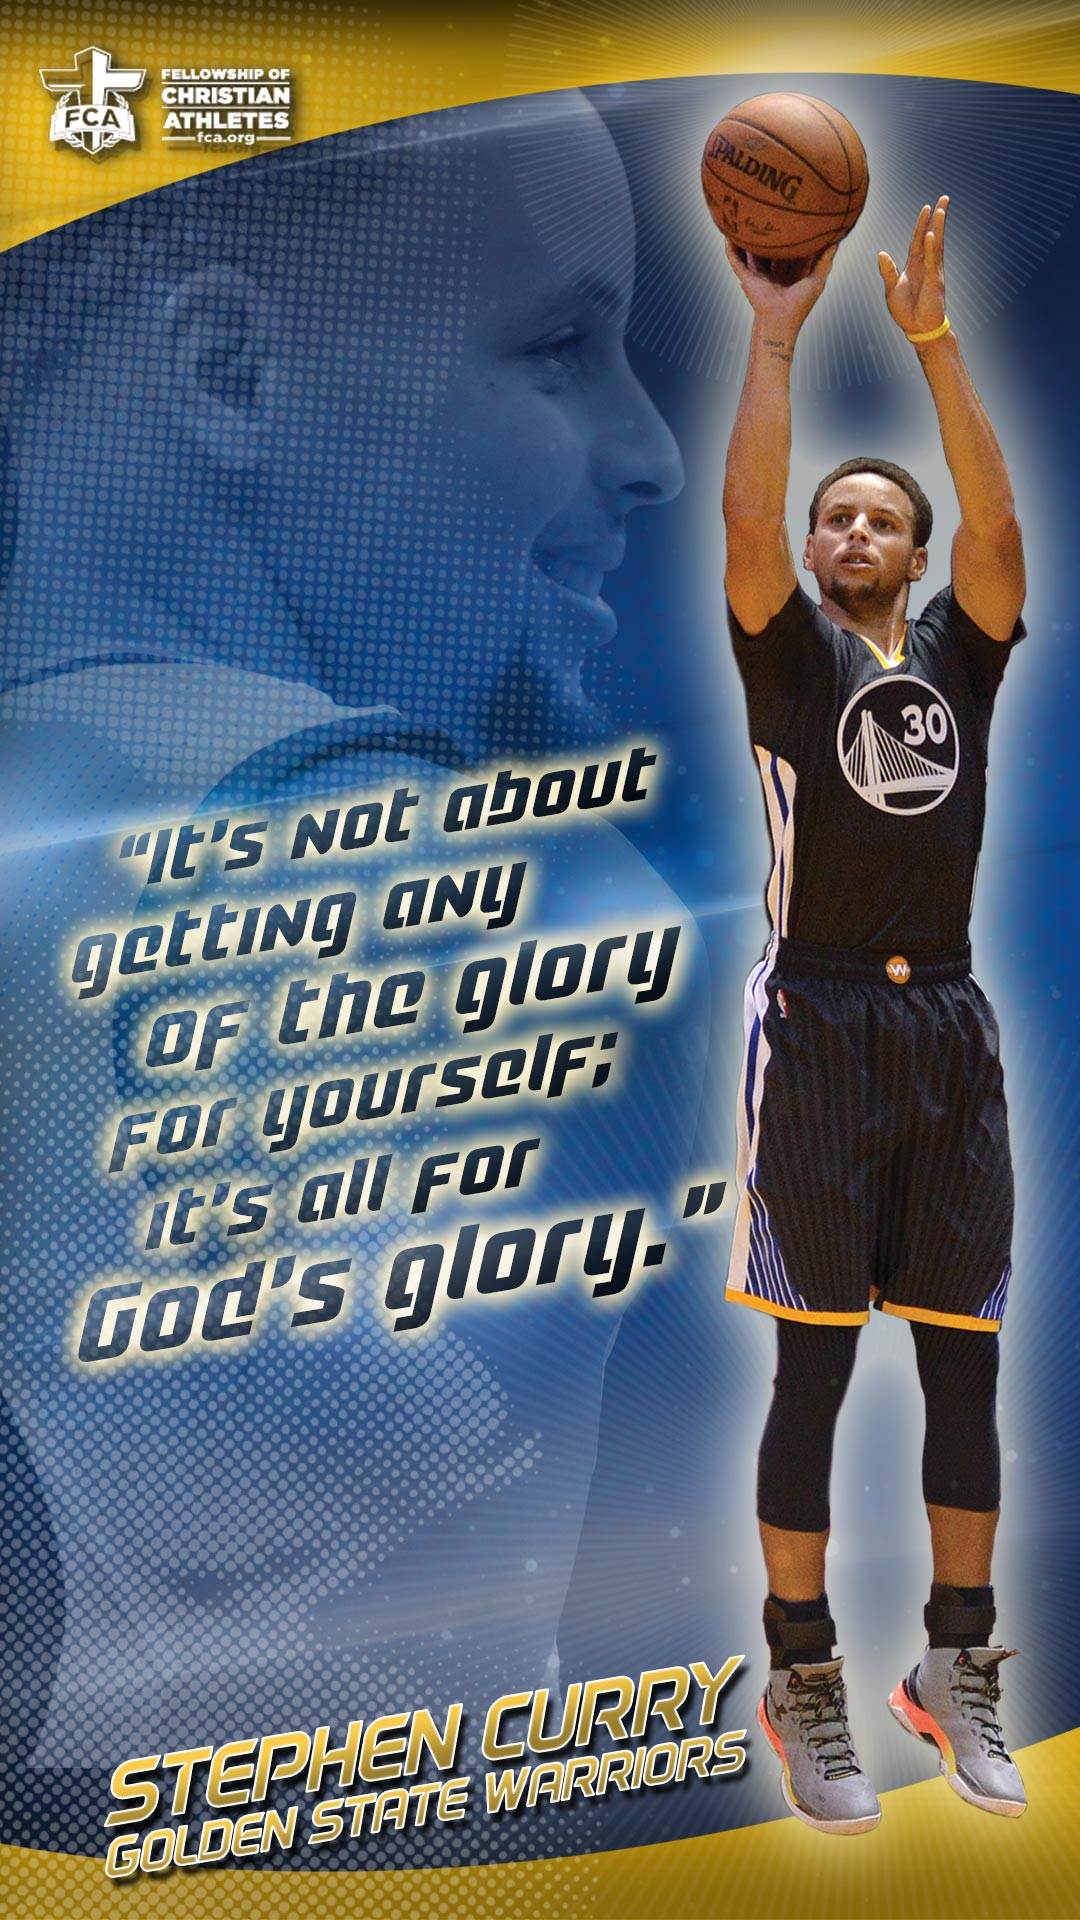 Minimalist Iphone Wallpaper Quotes Stephen Curry 2016 Fca Resources